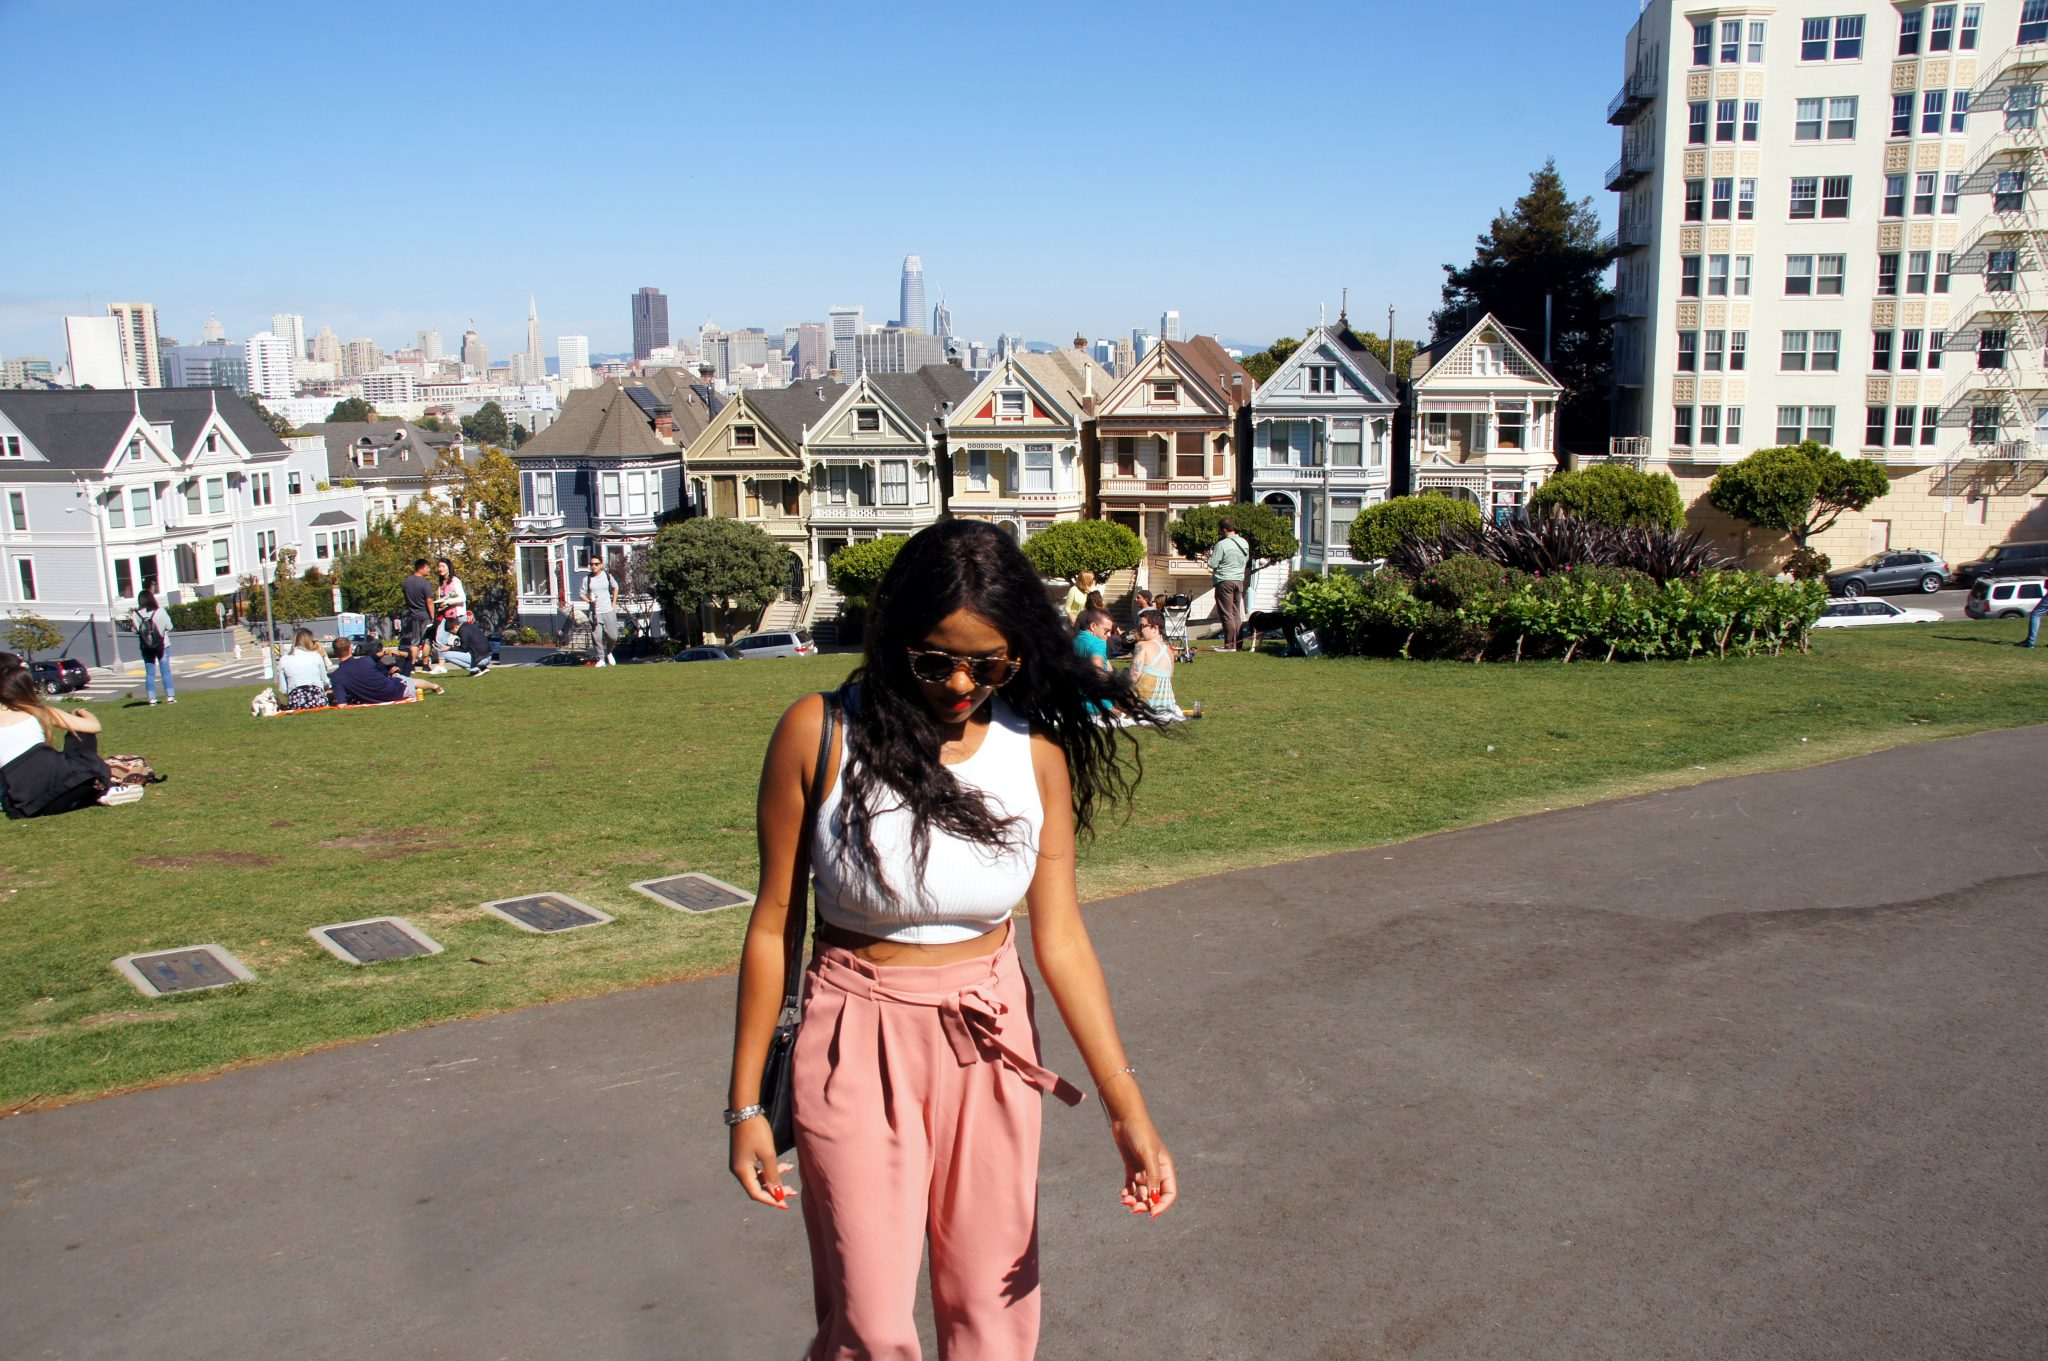 Me in front of the Painted Ladies